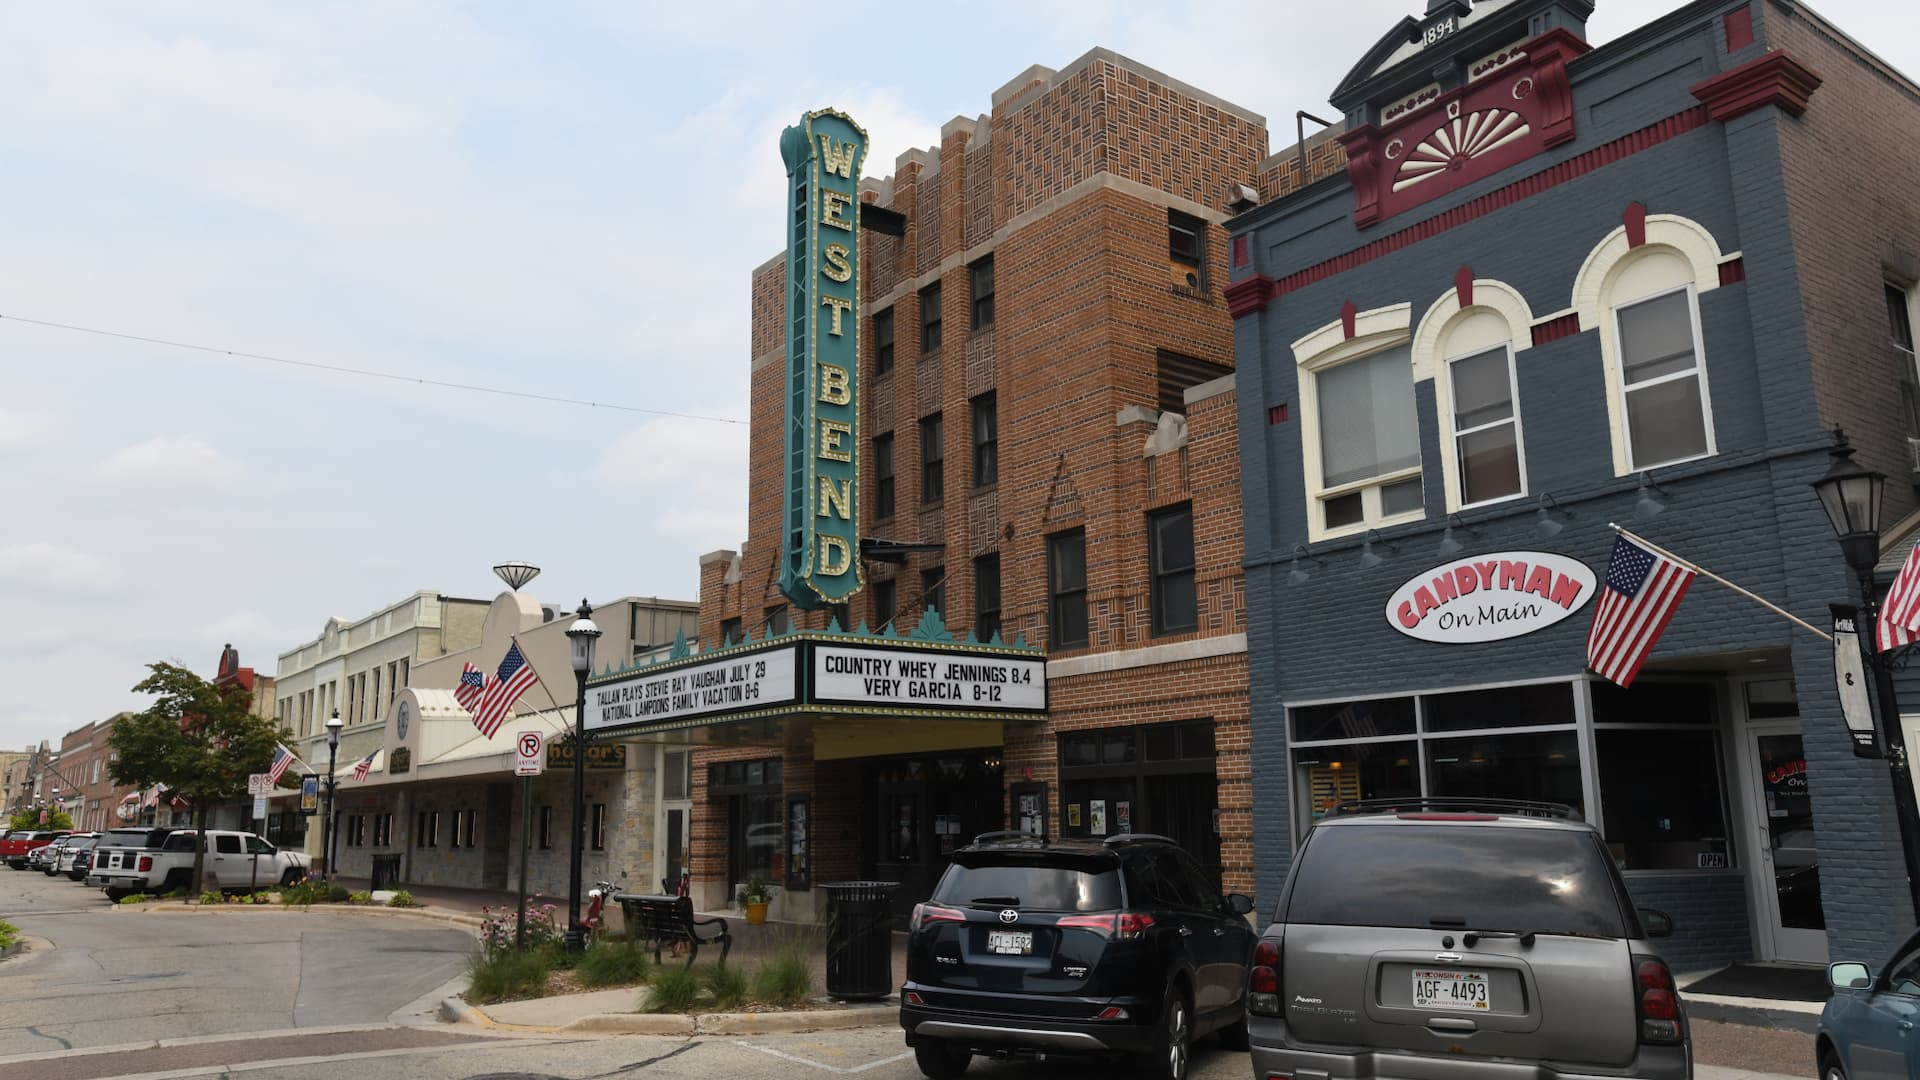 Shopping in downtown West Bend Wisconsin